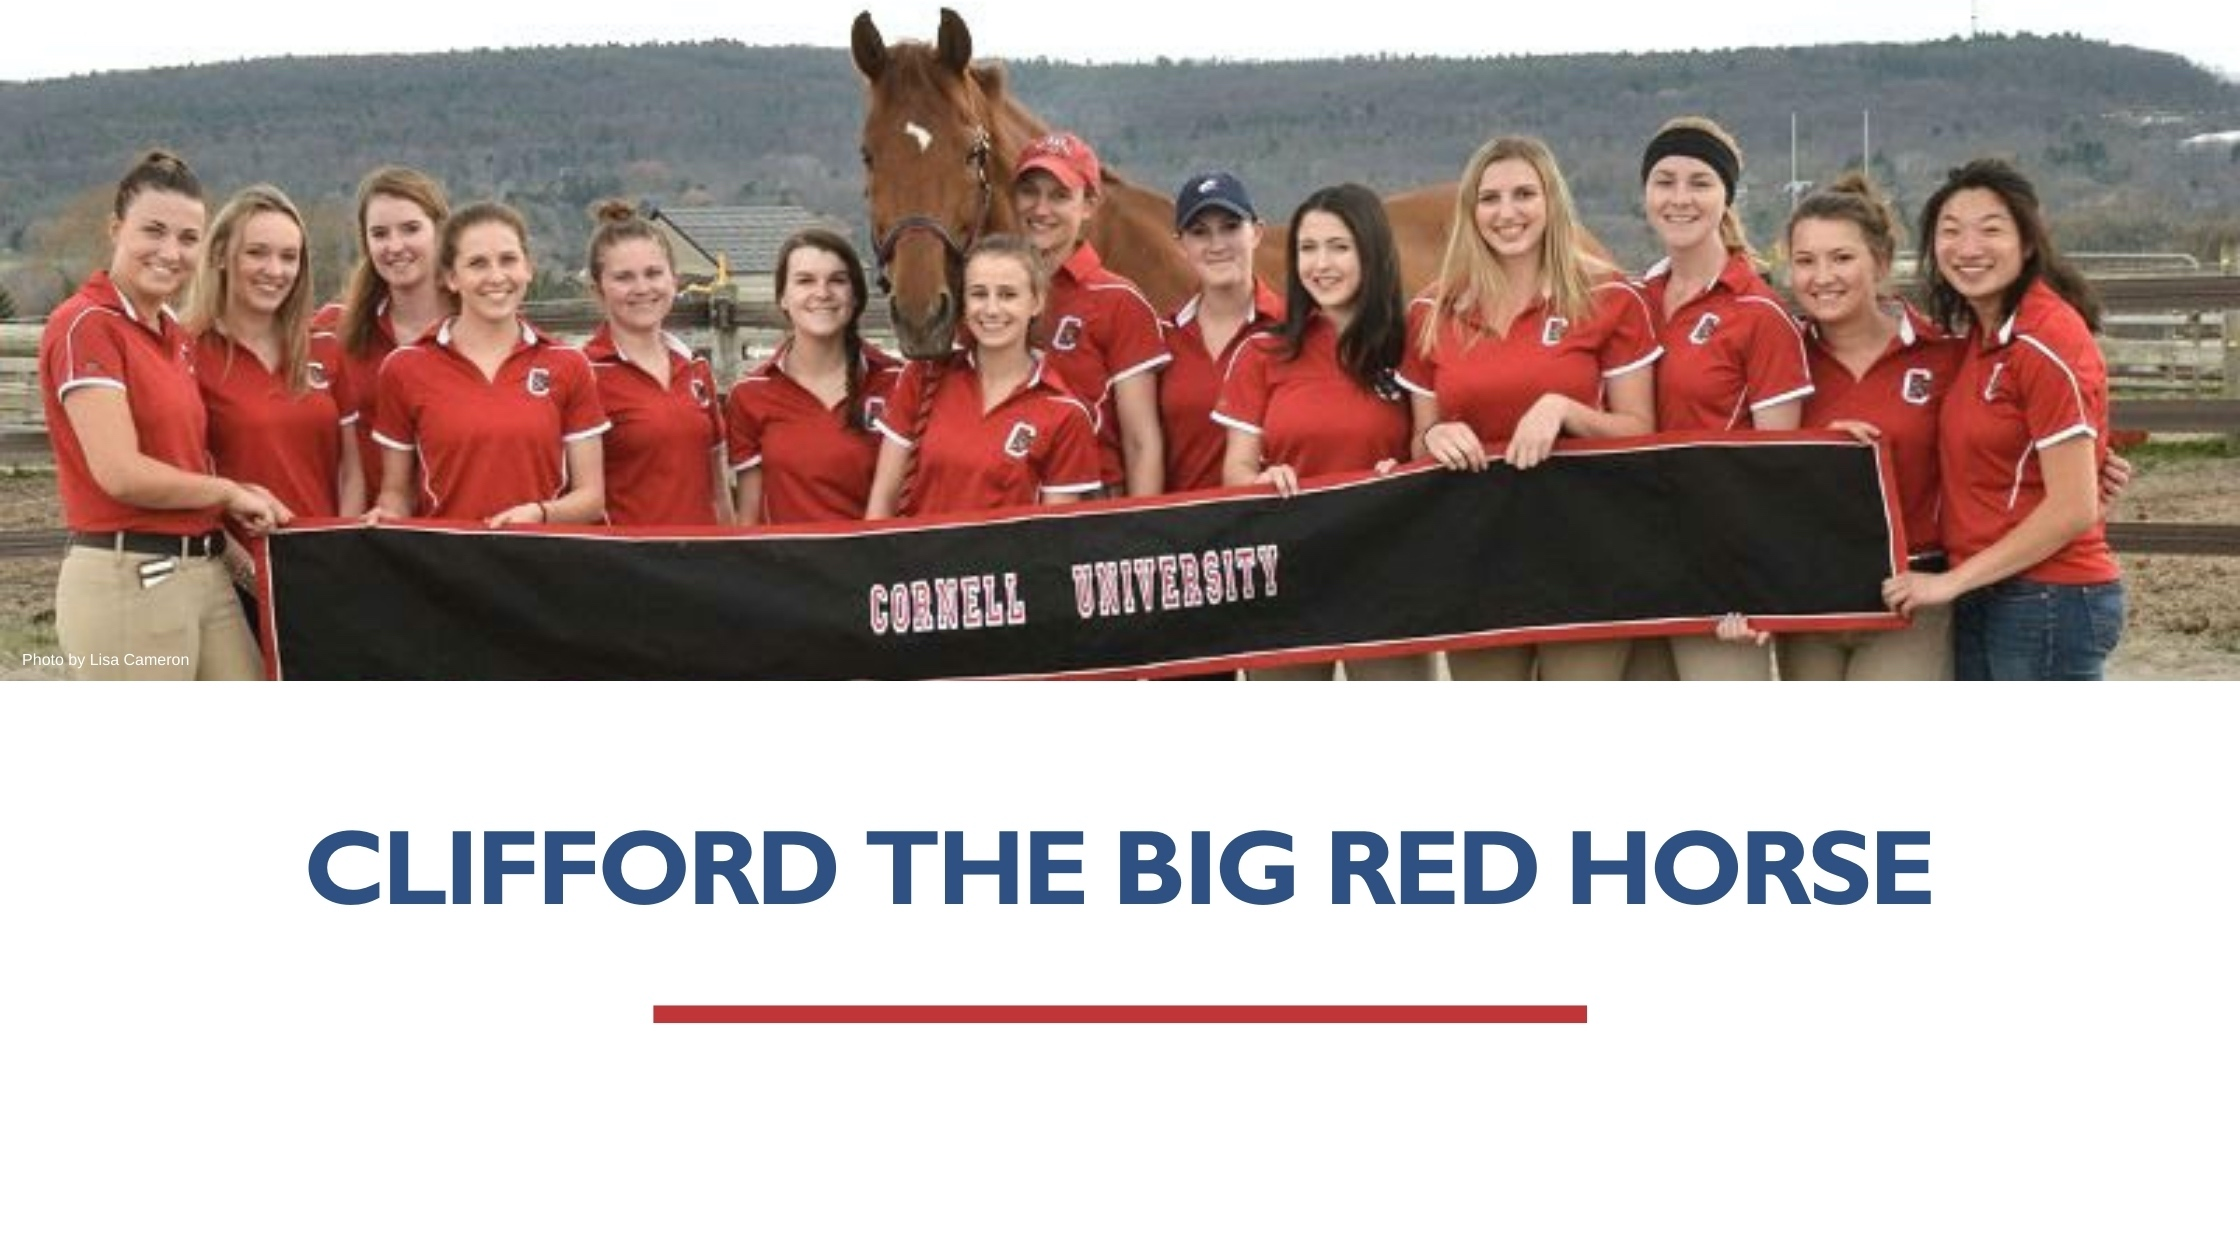 ihsa-hall-of-fame-clifford-the-big-red-horse